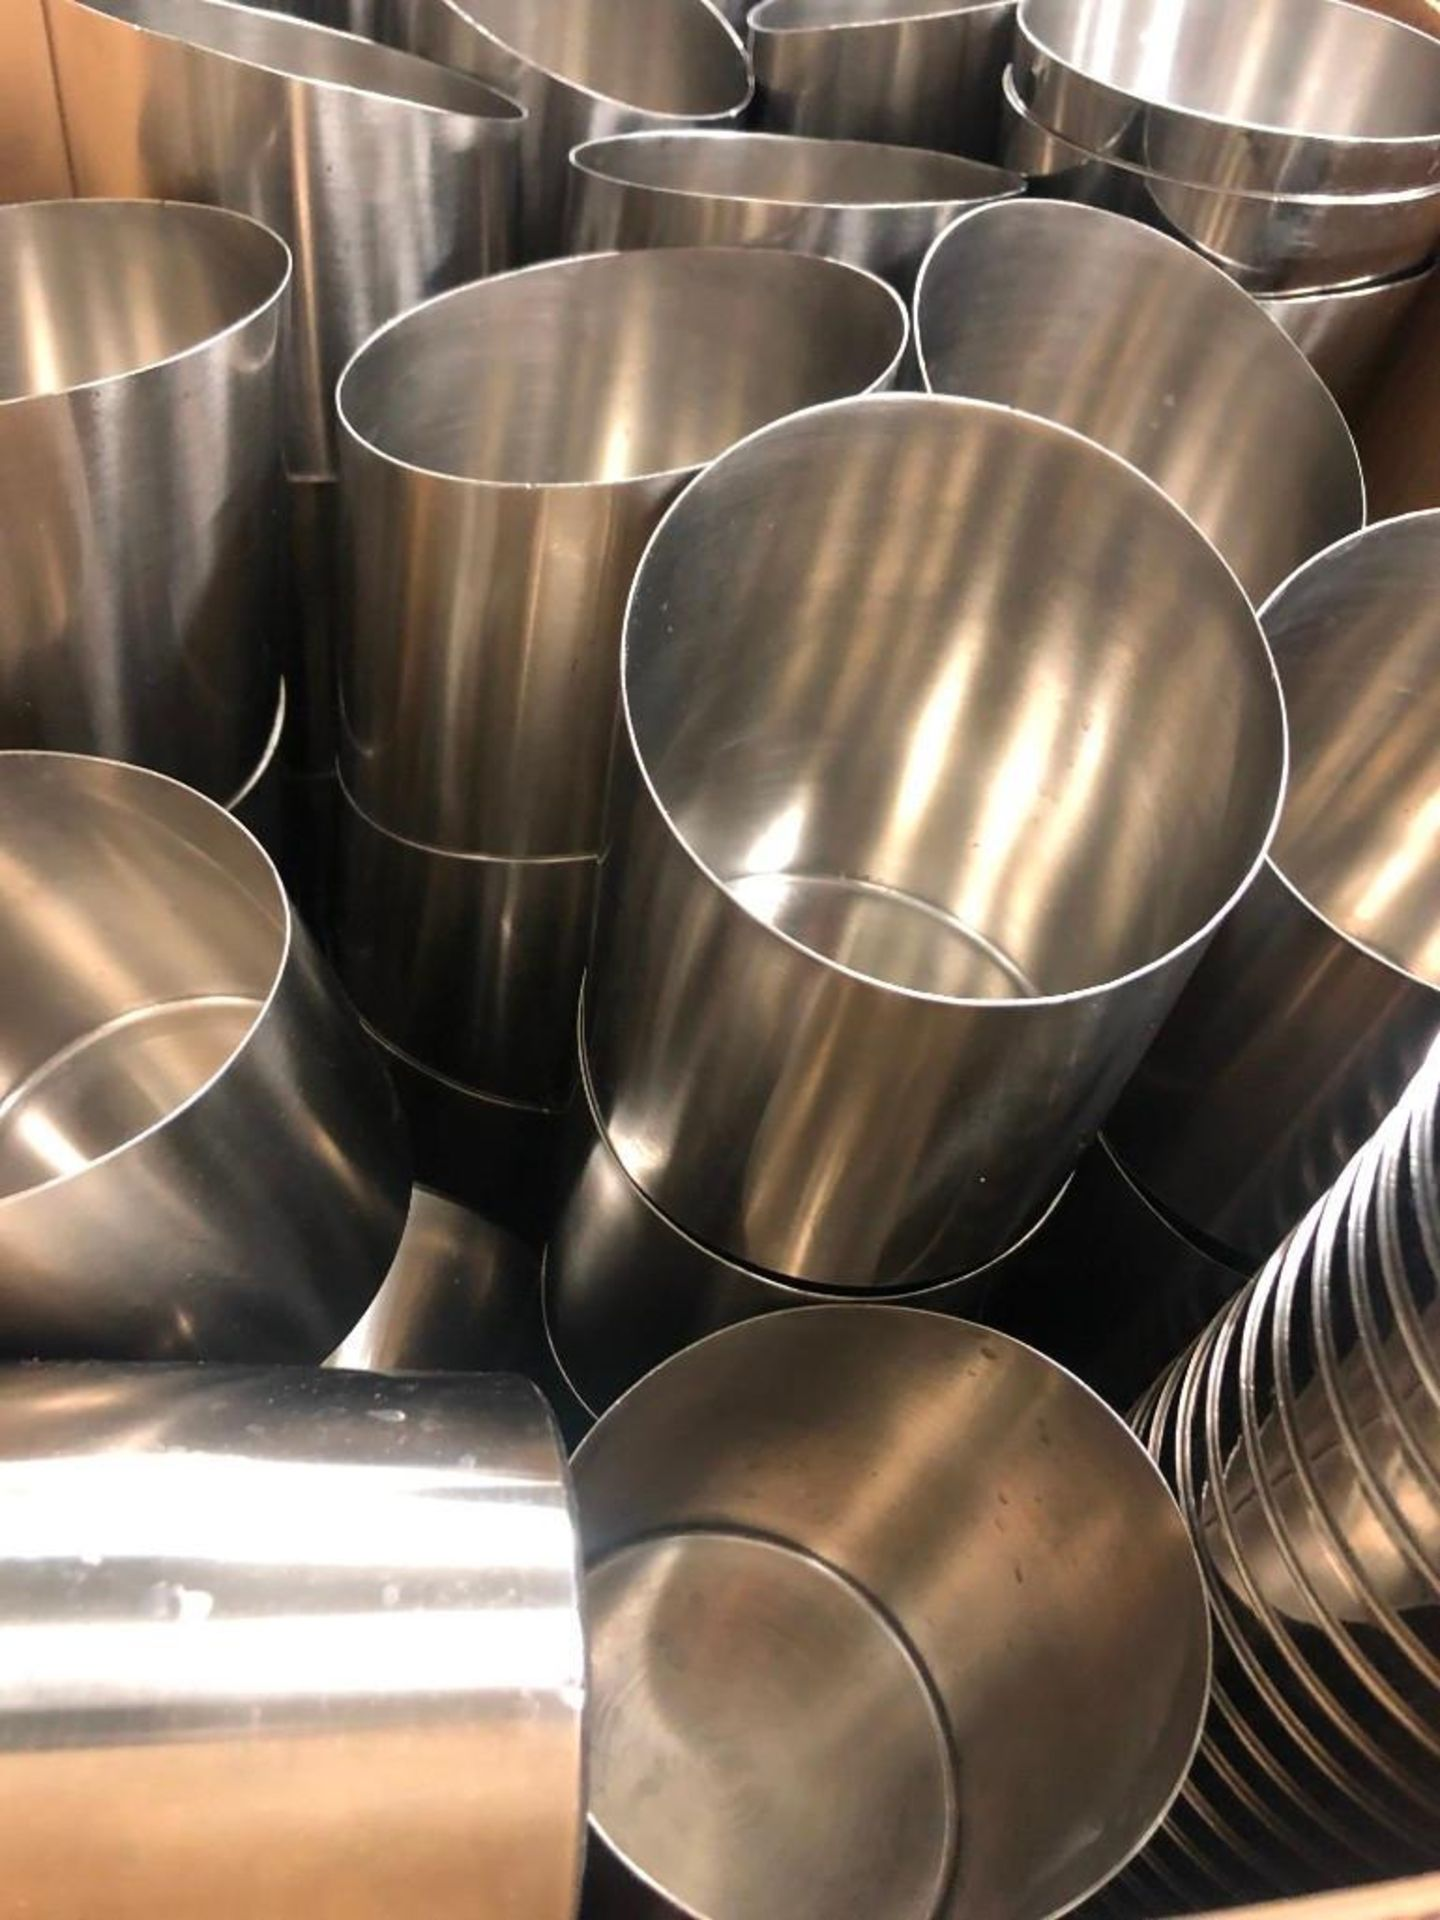 BOX OF STAINLES STEEL FRY & SLAW BOWLS - Image 2 of 2